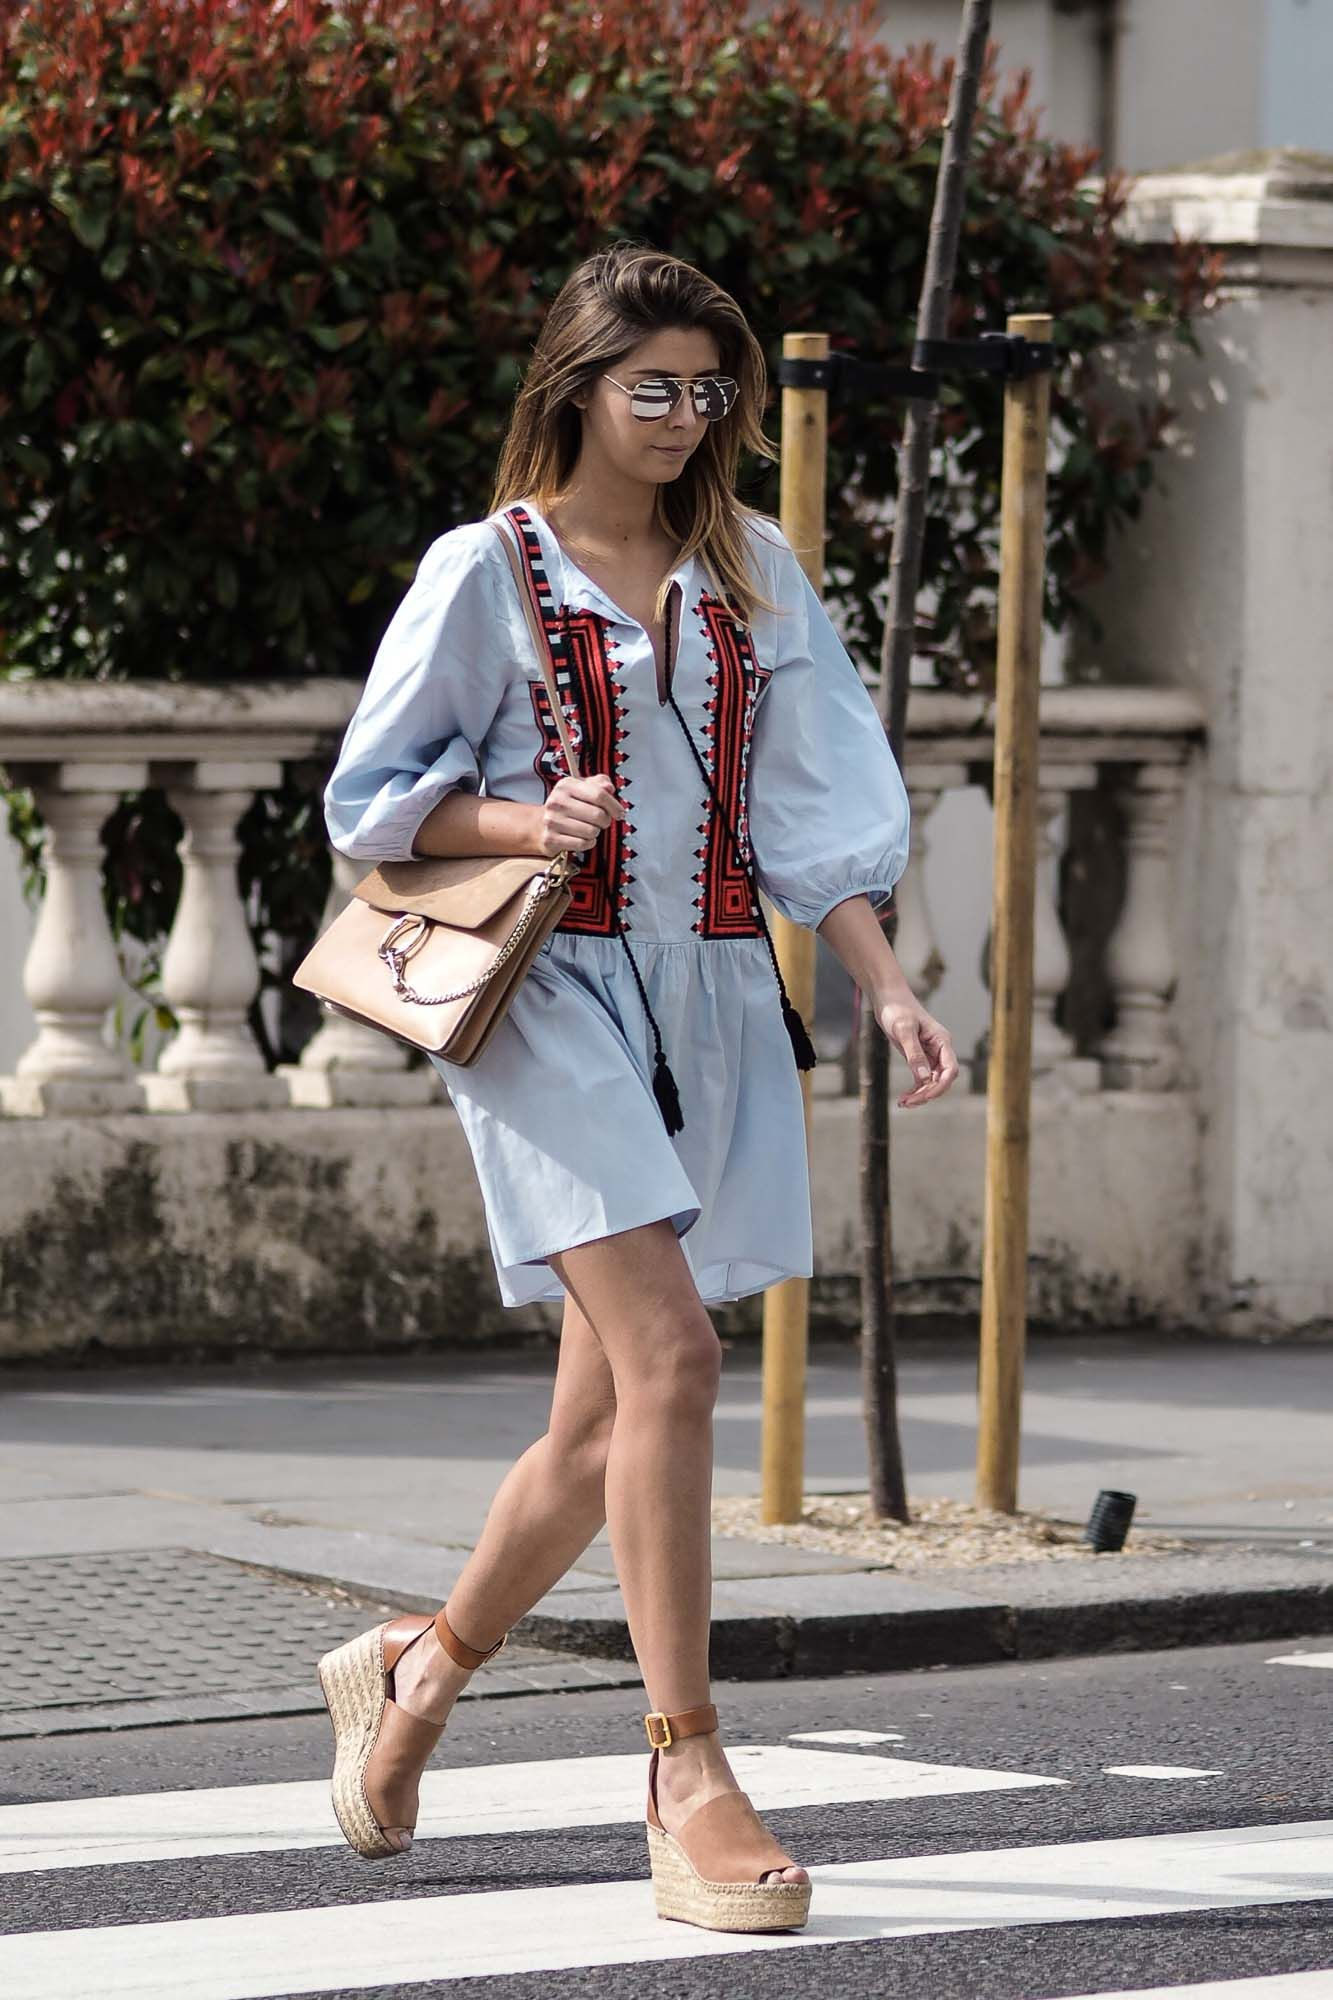 f8a4c0402 H&M Blue embroidered smock dress, Chloe Faye bag, Chloe suede wedge  espadrilles